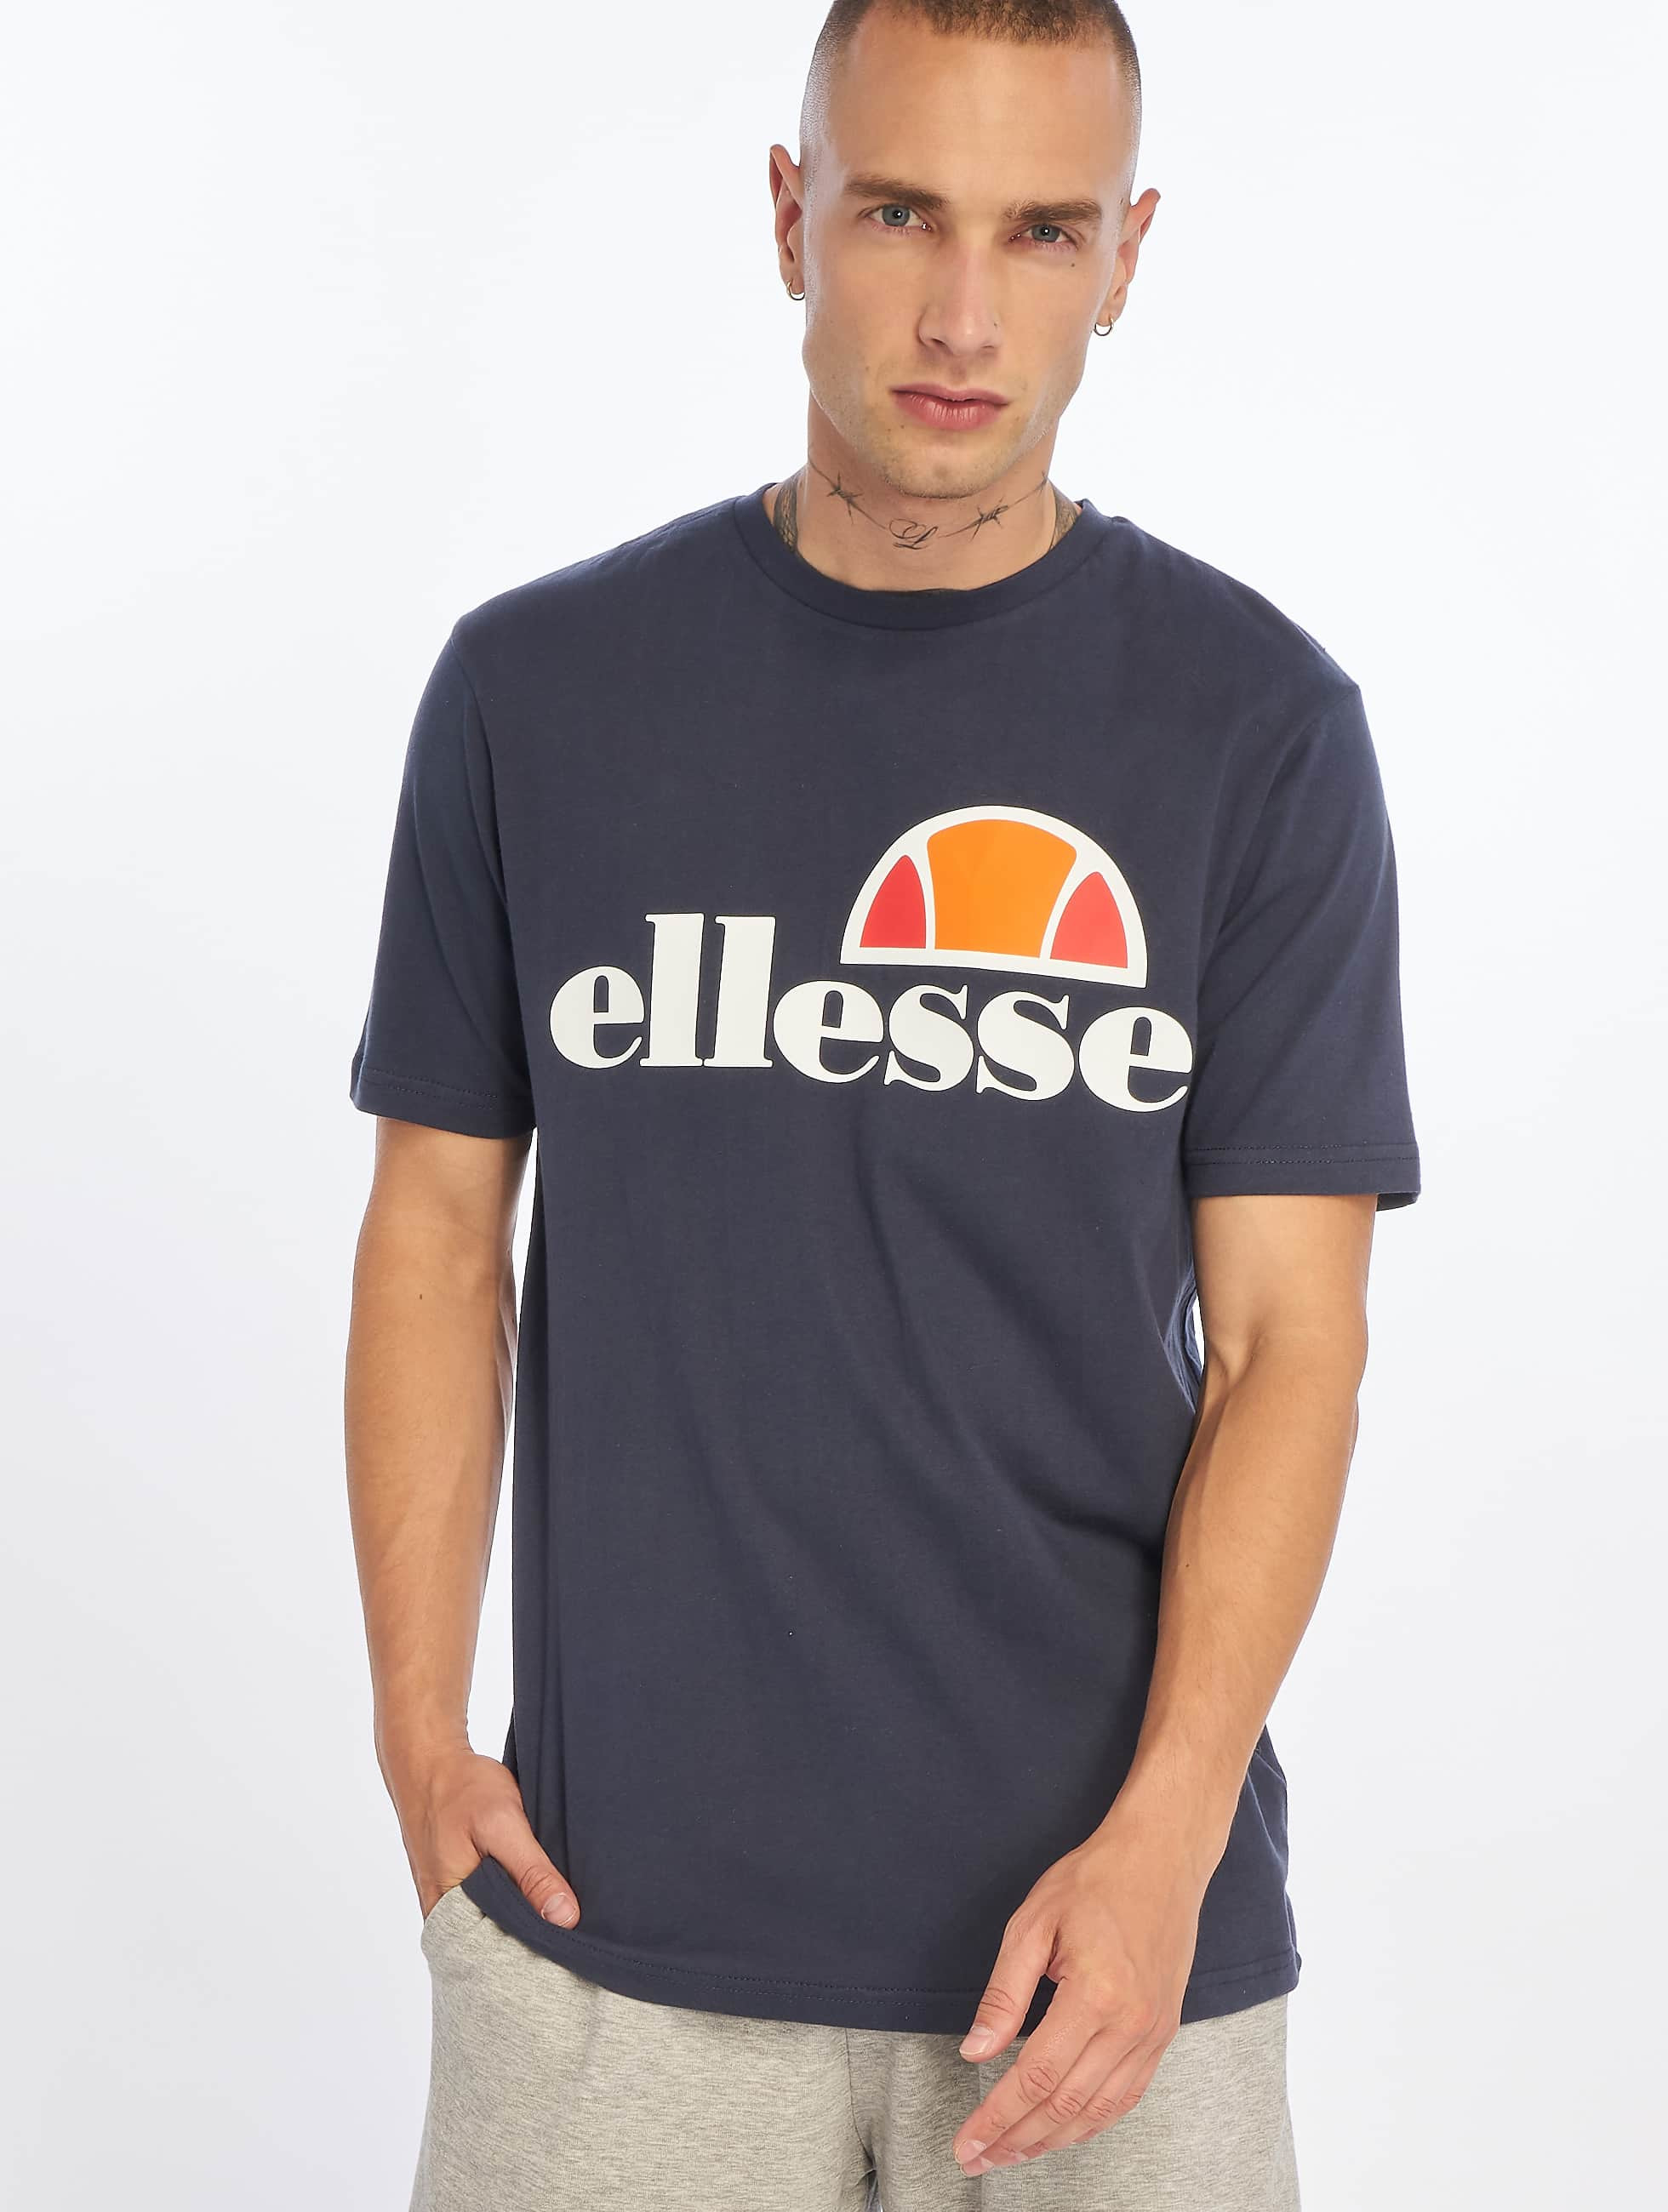 ellesse prado bleu homme t shirt 333176. Black Bedroom Furniture Sets. Home Design Ideas